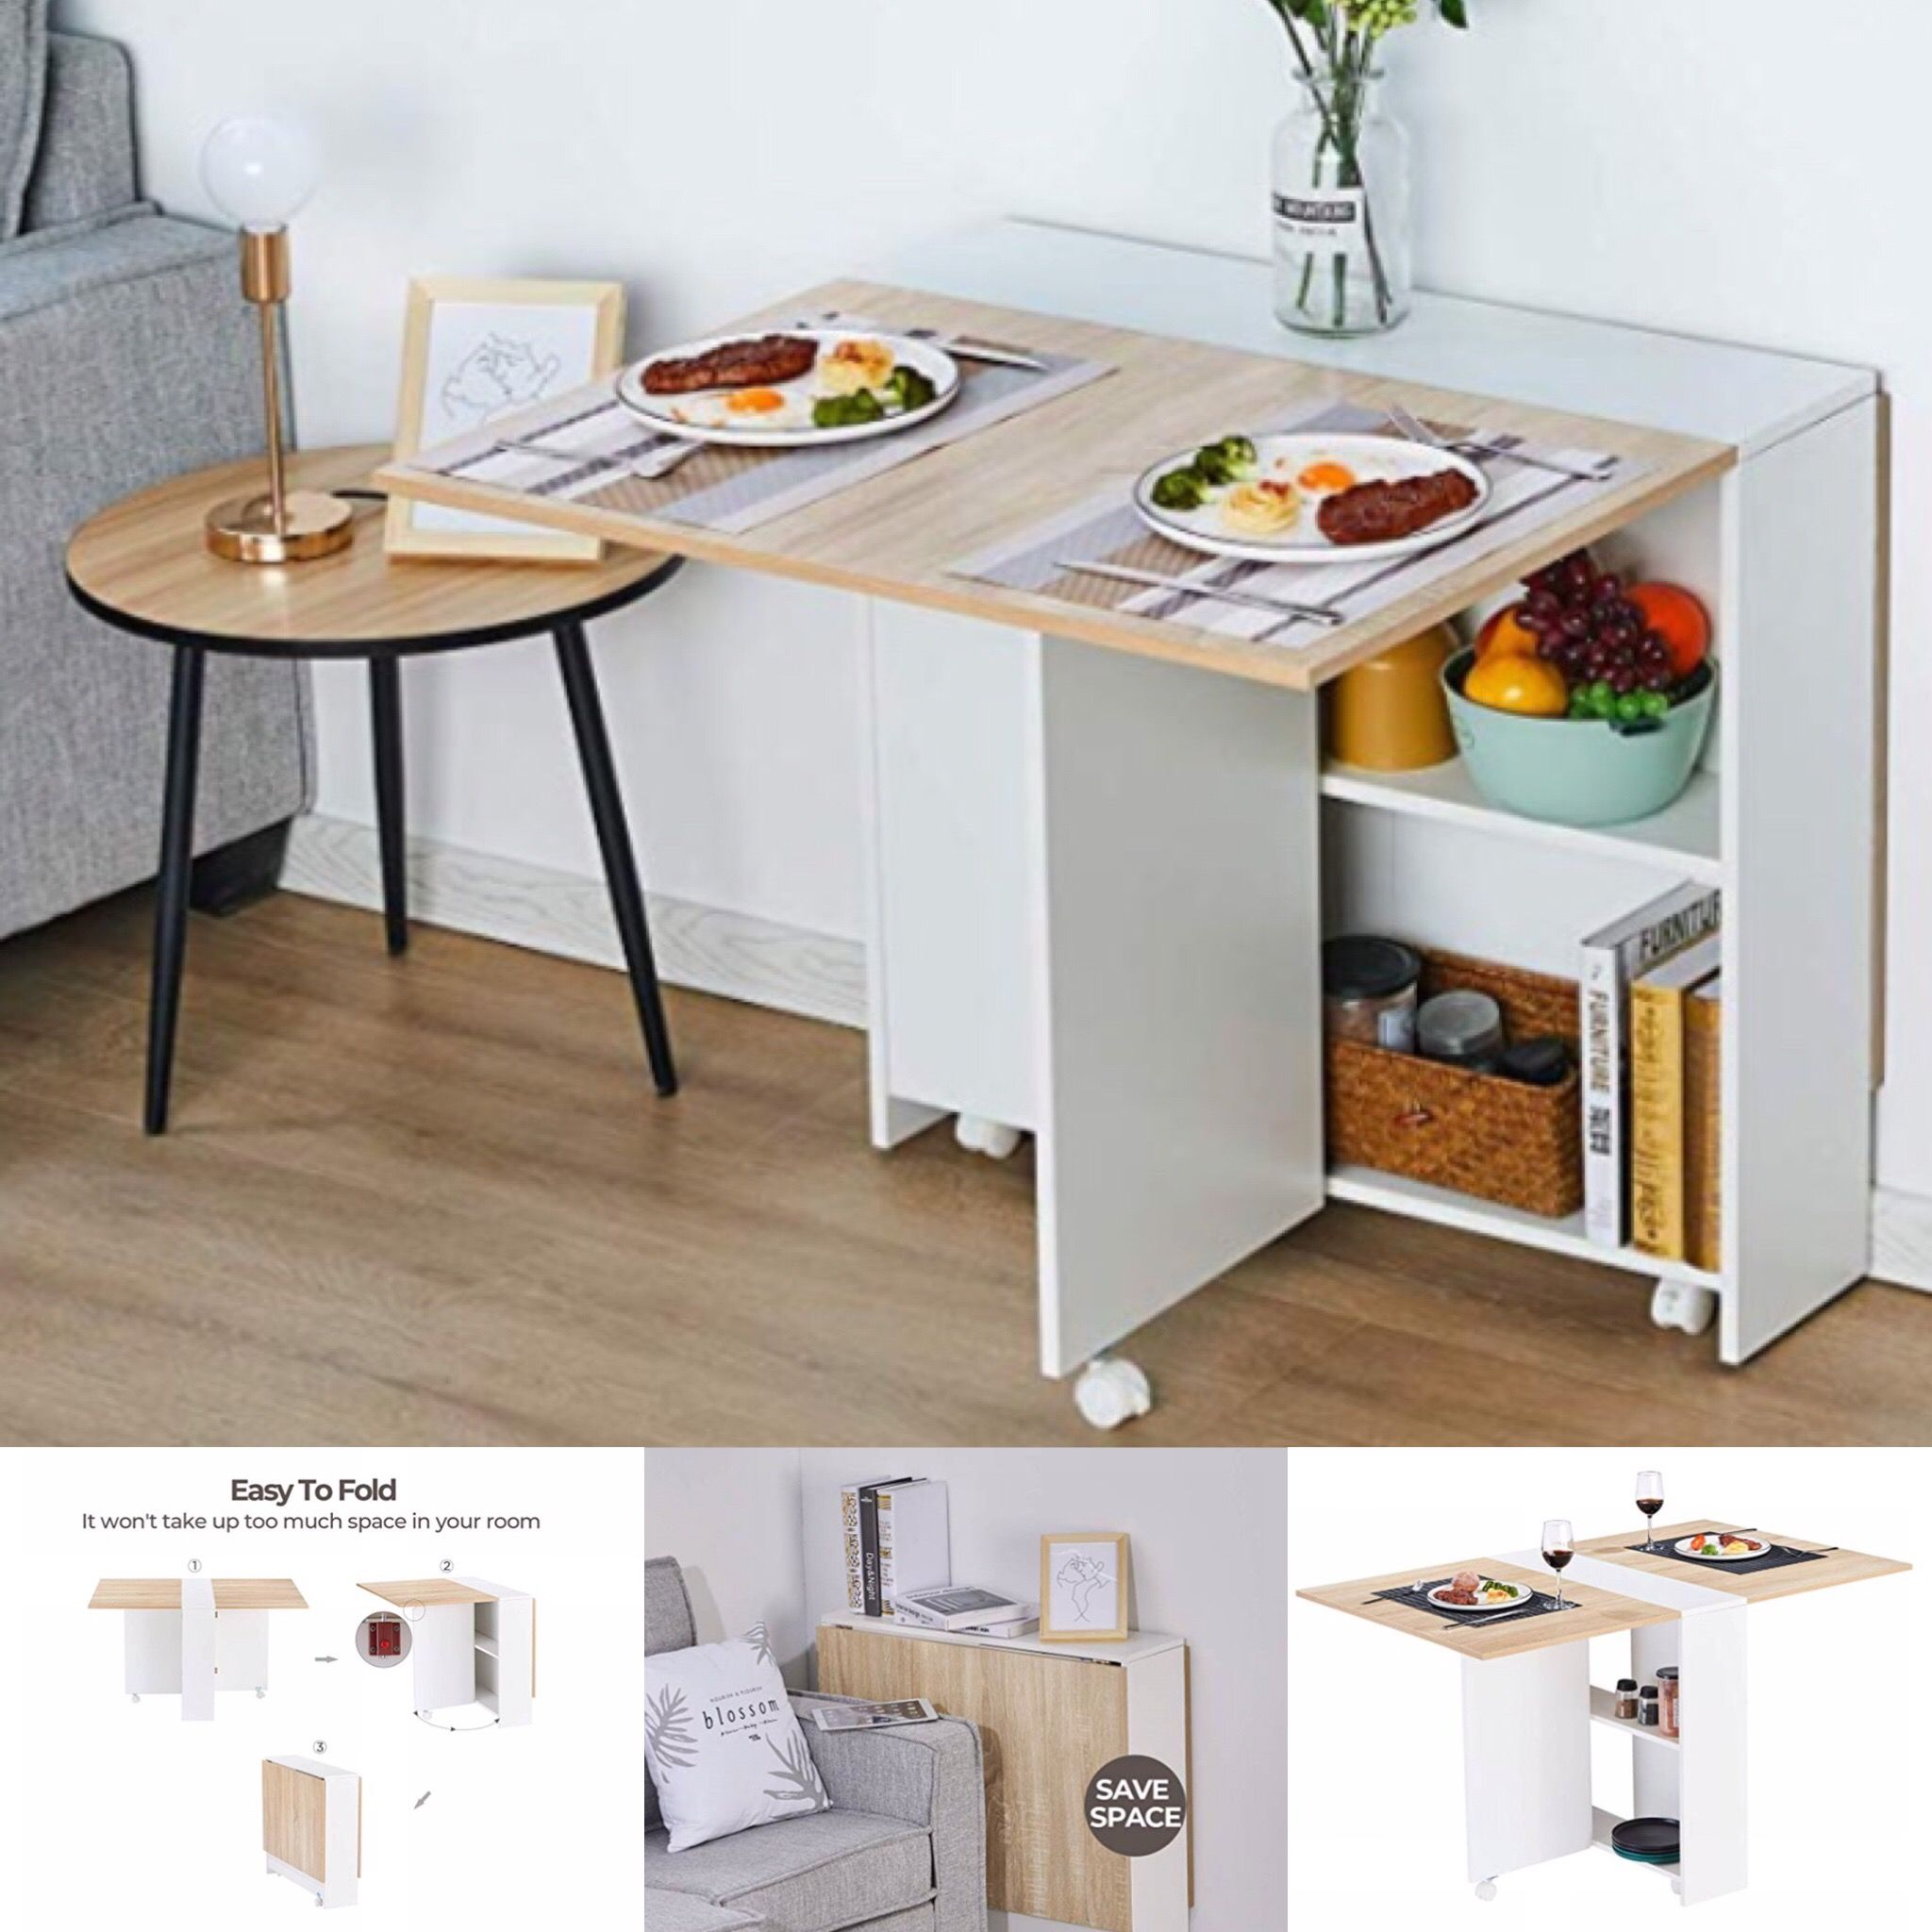 Modular Folding Dining Table Dining Table Small Space Small Dining Table Apartment Compact Dining Table Dining table for small kitchen